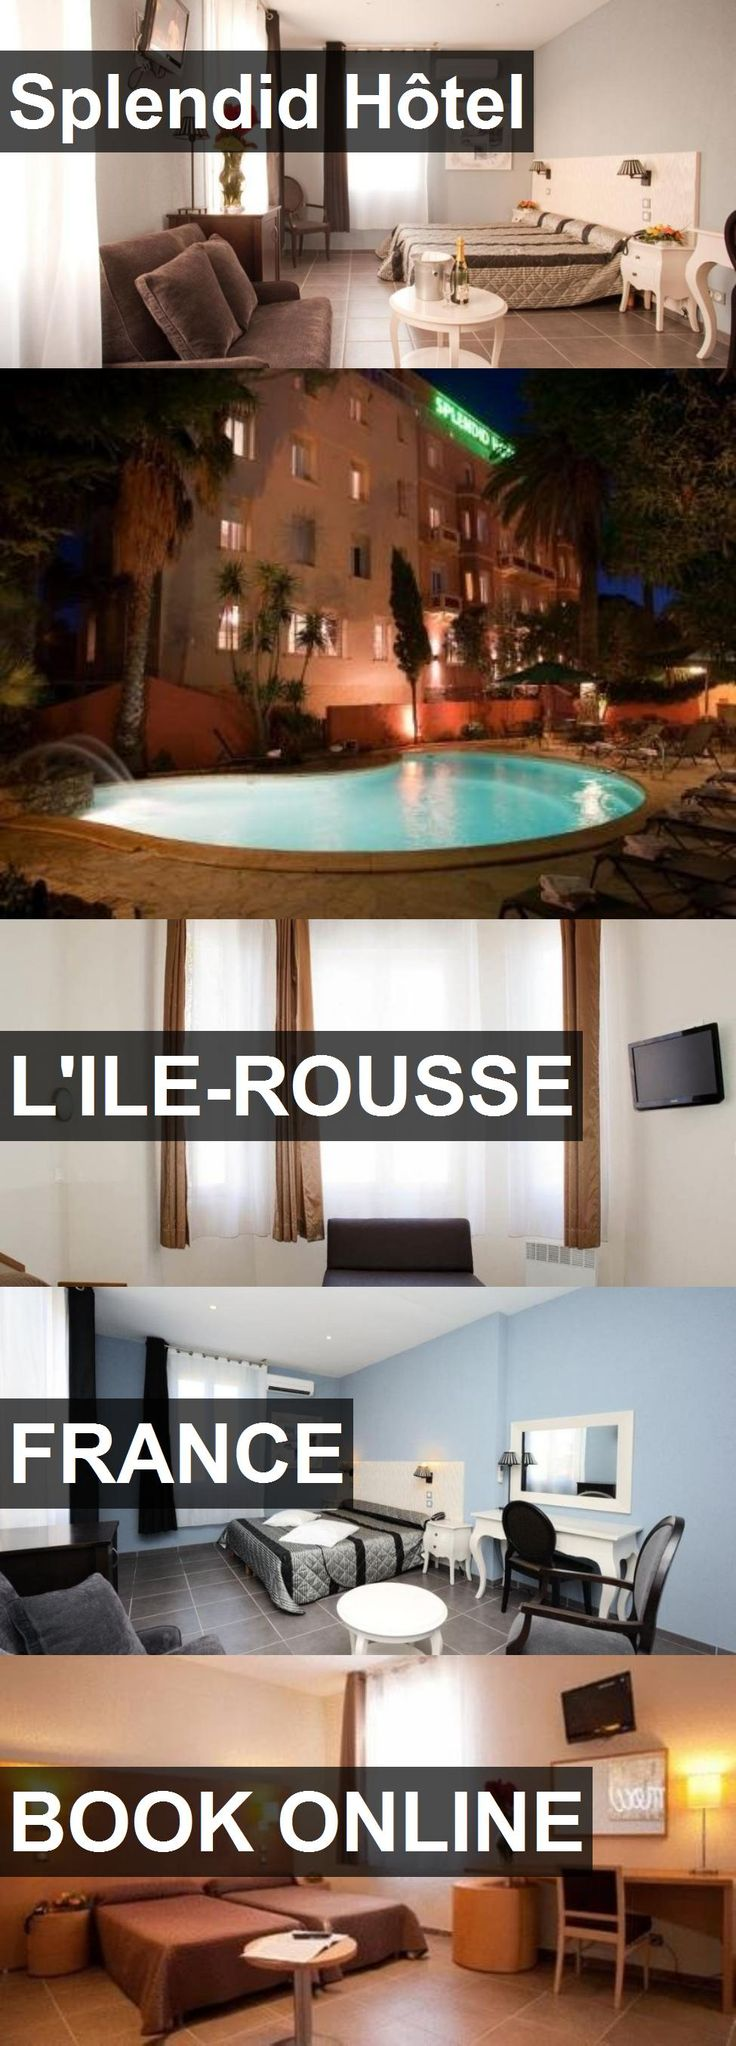 Hotel Splendid Hôtel in L'Ile-Rousse, France. For more information, photos, reviews and best prices please follow the link. #France #L'Ile-Rousse #travel #vacation #hotel